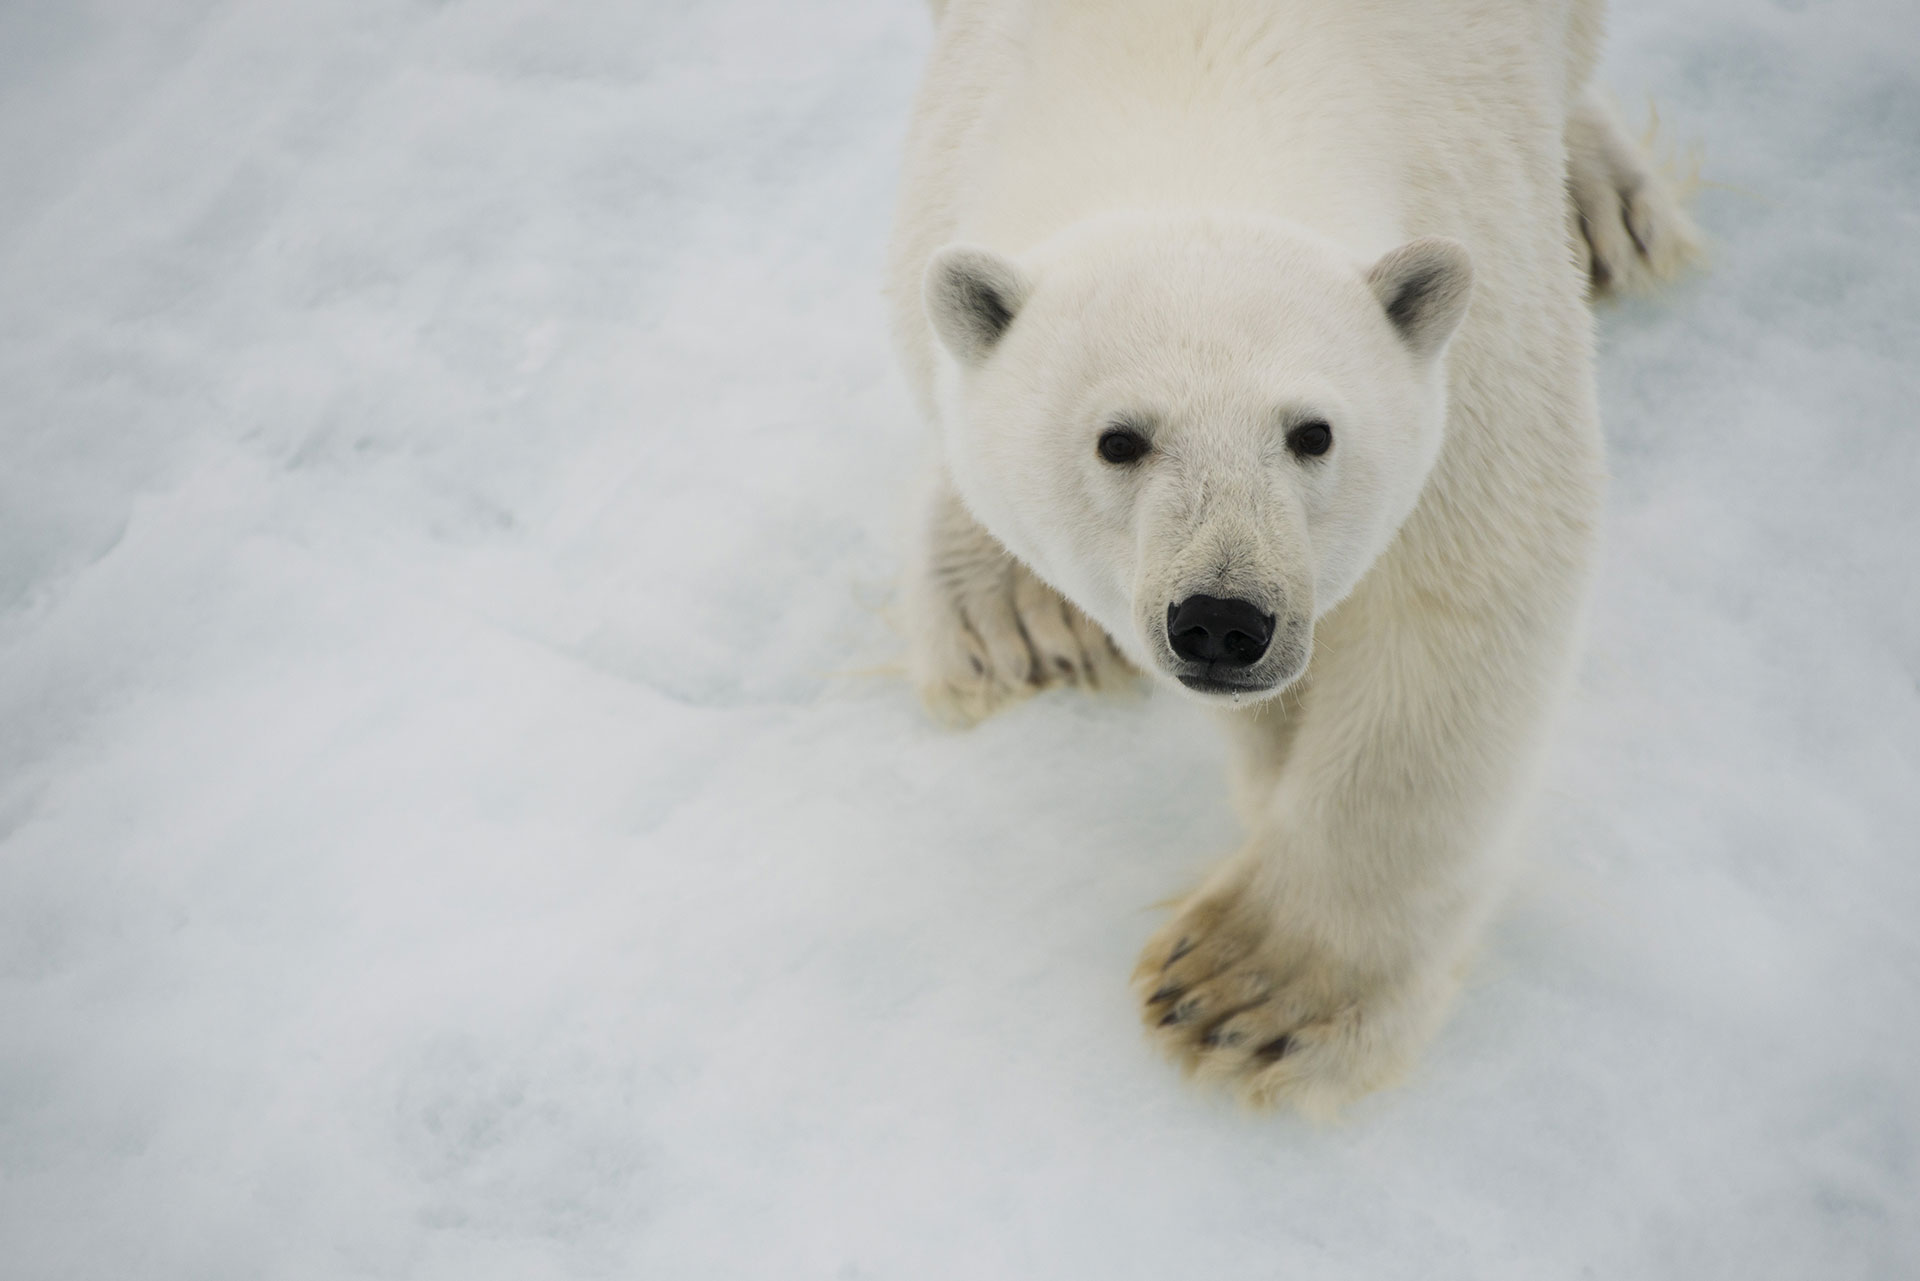 Polar Bear in the Arctic. © Daniel Beltrá / Greenpeace